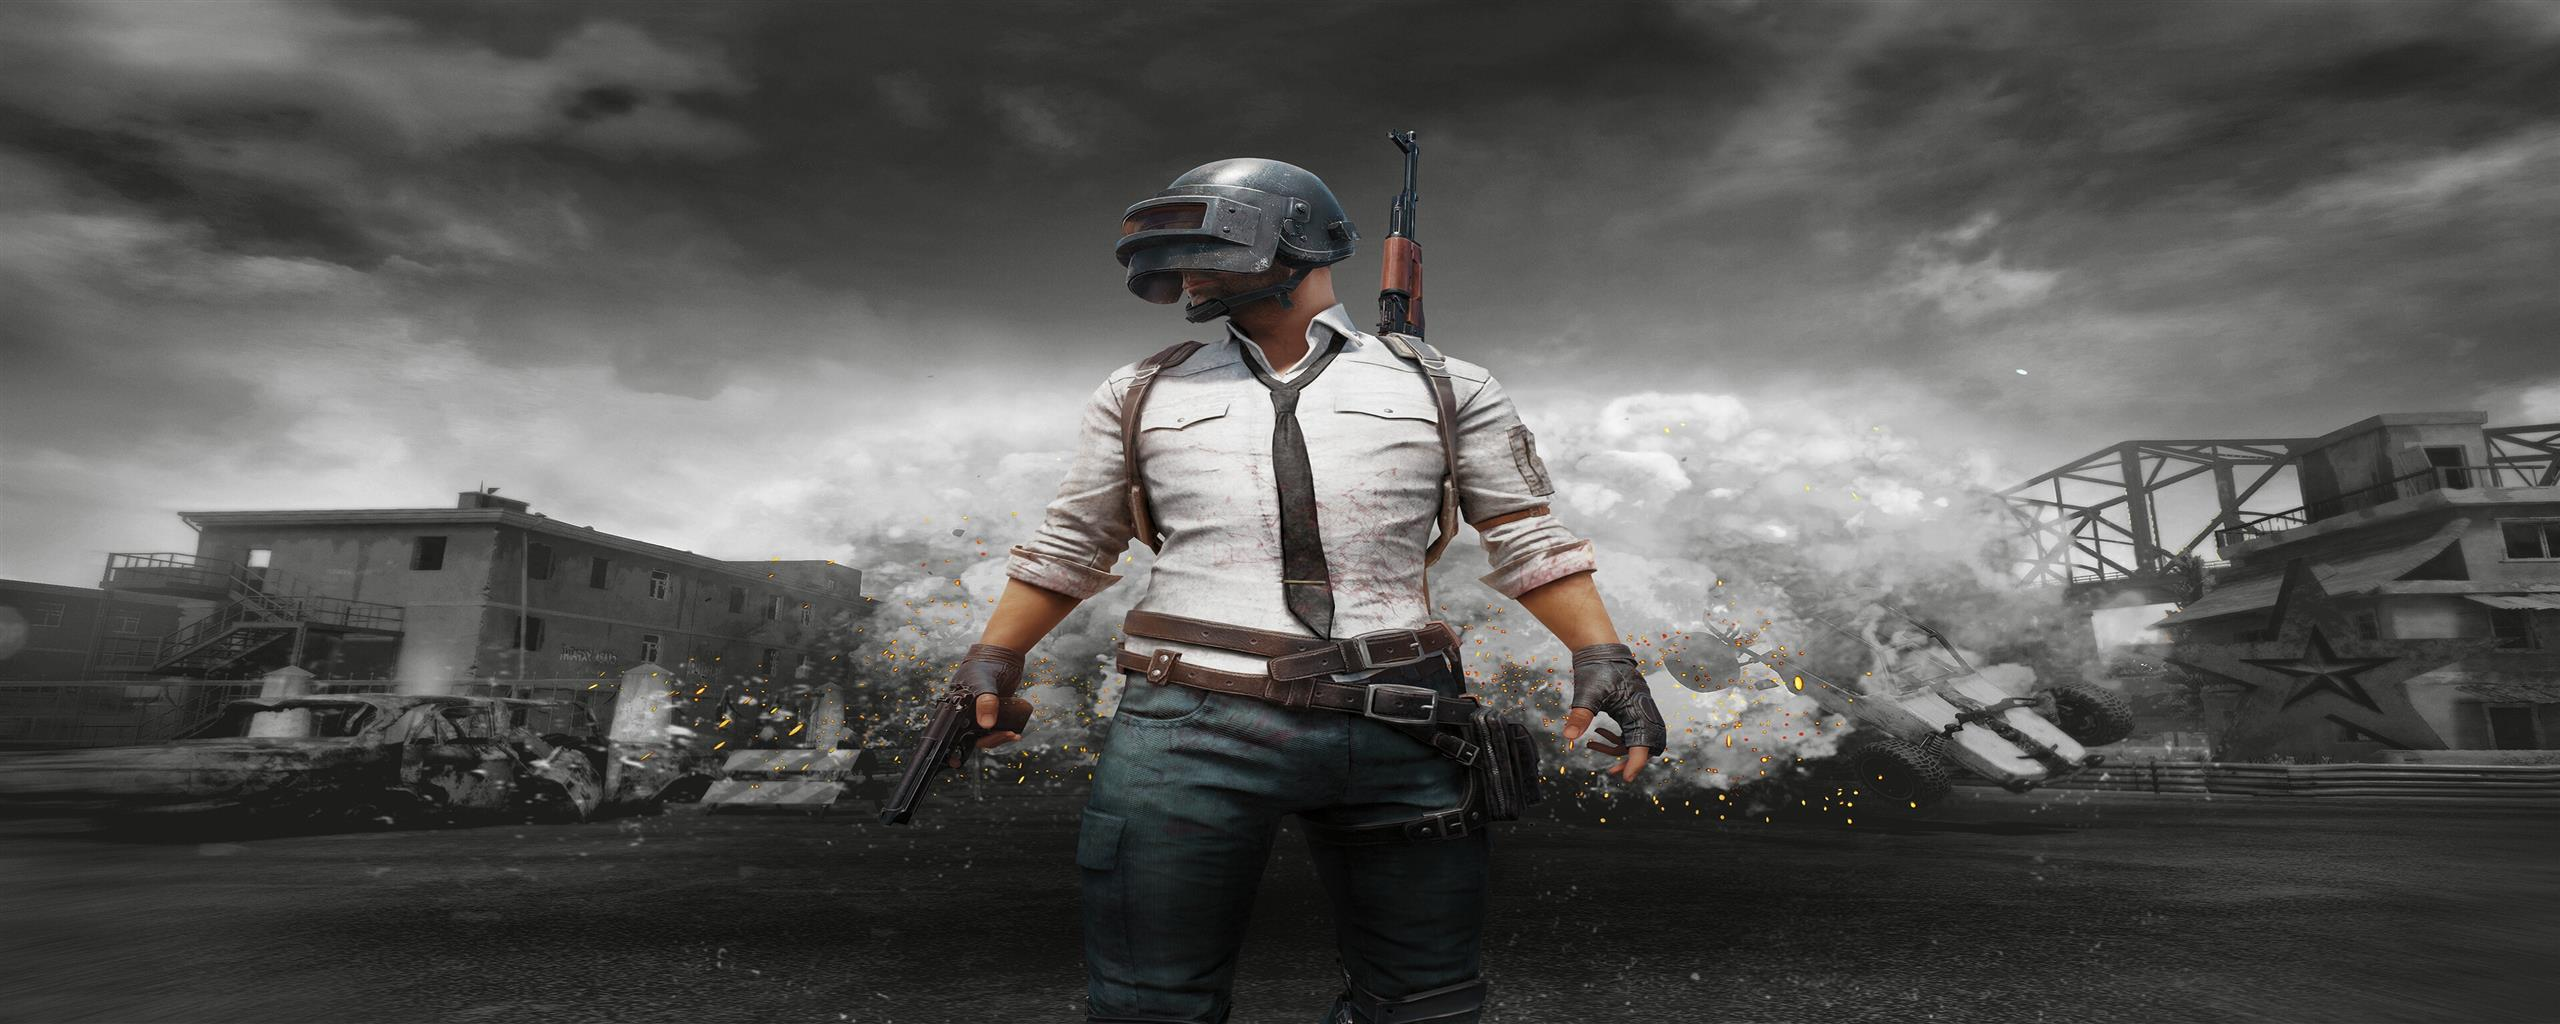 2560x1024 4K Poster of PlayerUnknowns Battlegrounds Game